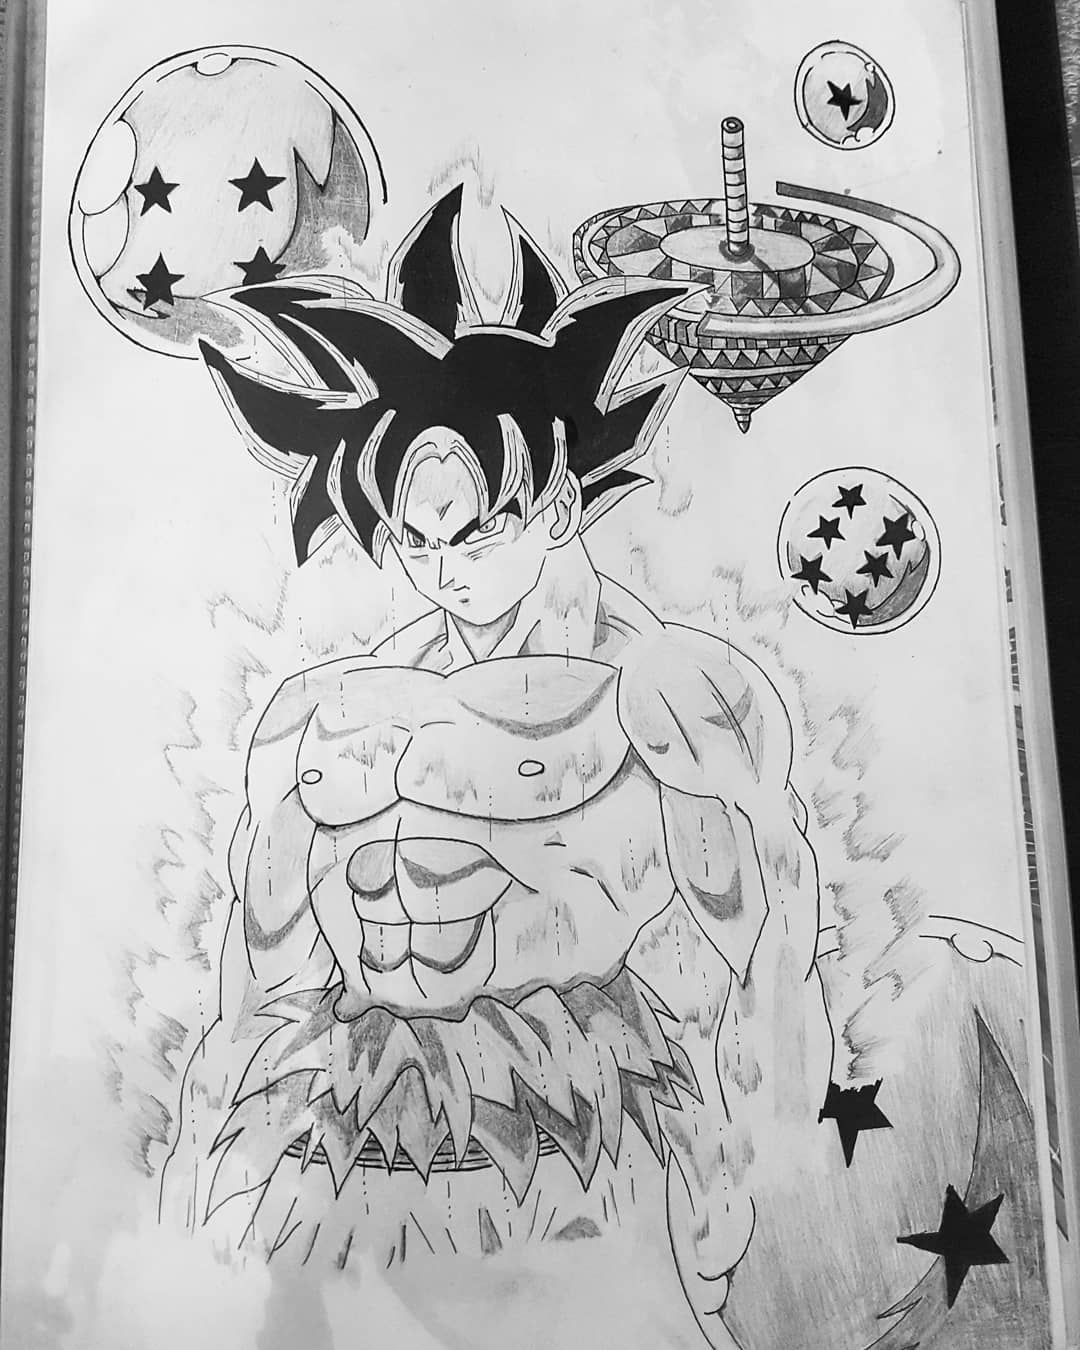 Goku dbs dragonball draw pictureoftheday pencil